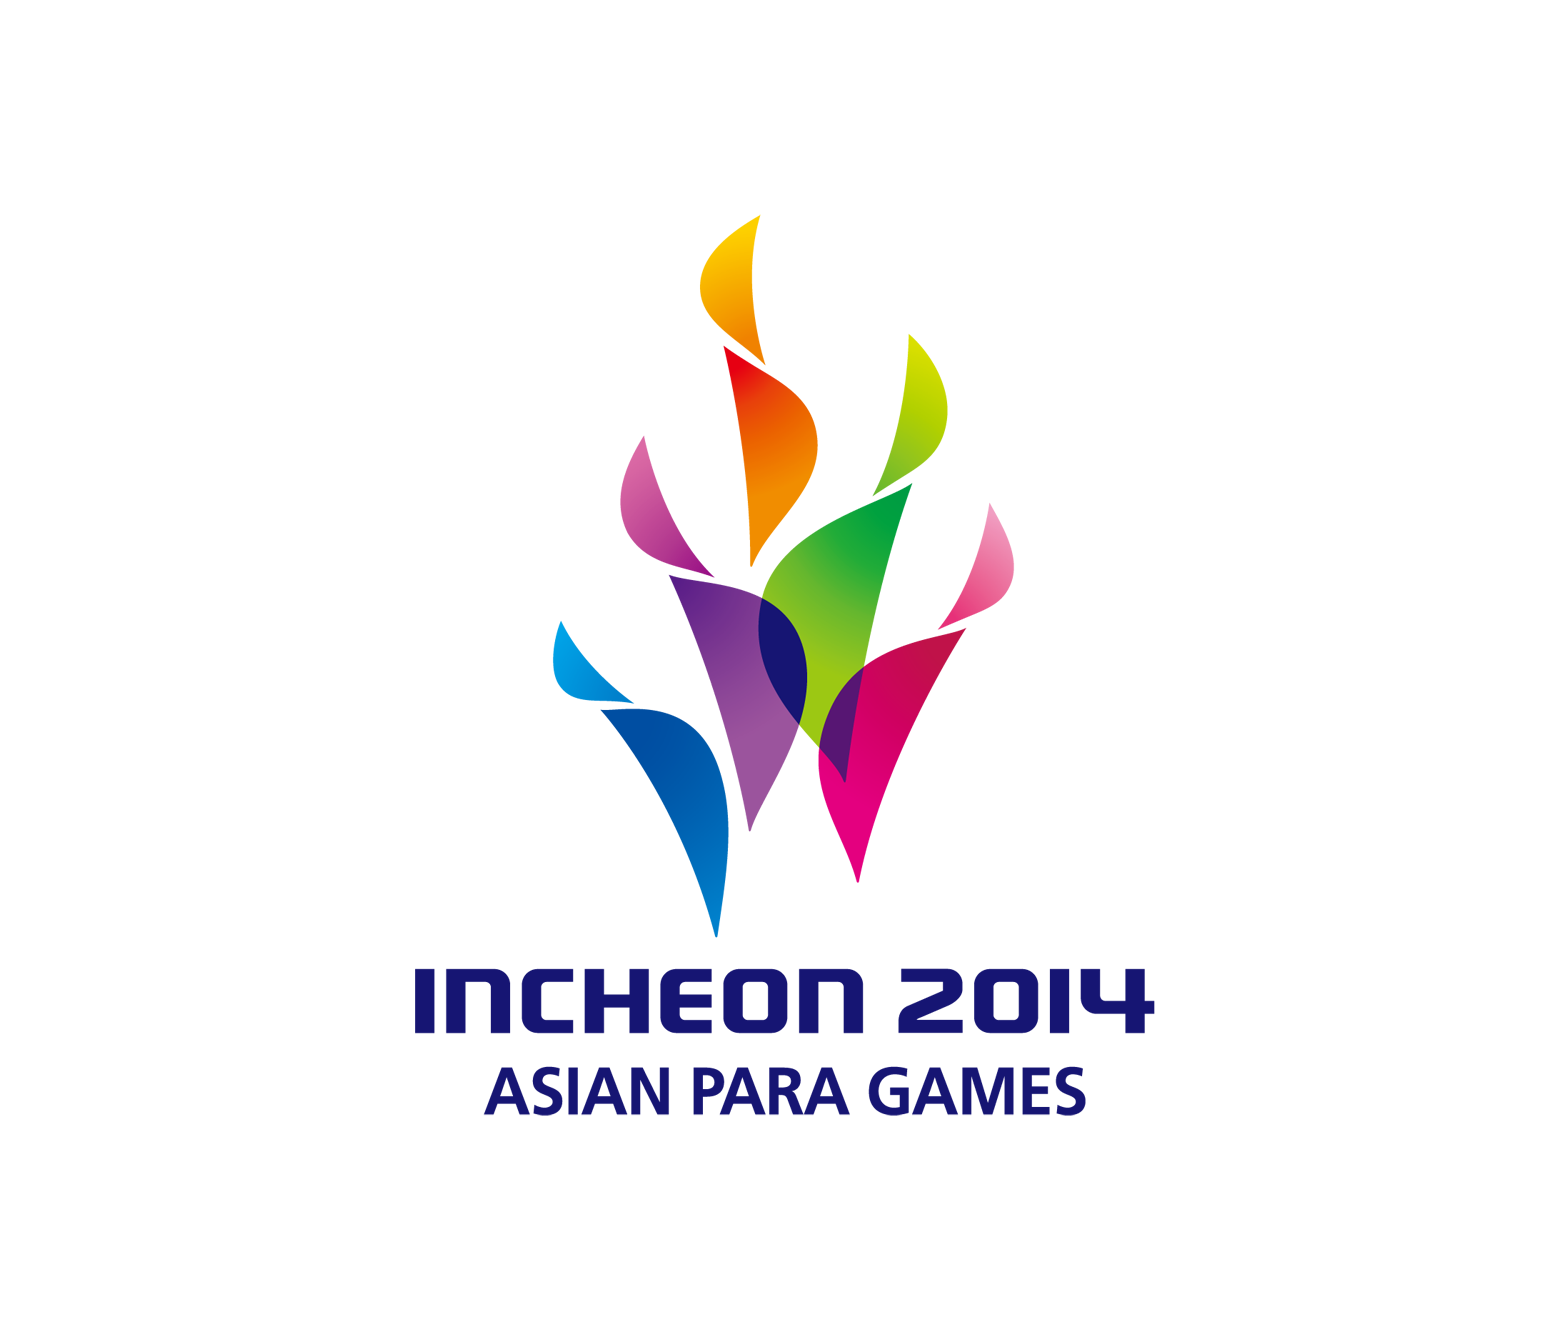 The emblem for Incheon2014APG has won the Red Dot Award